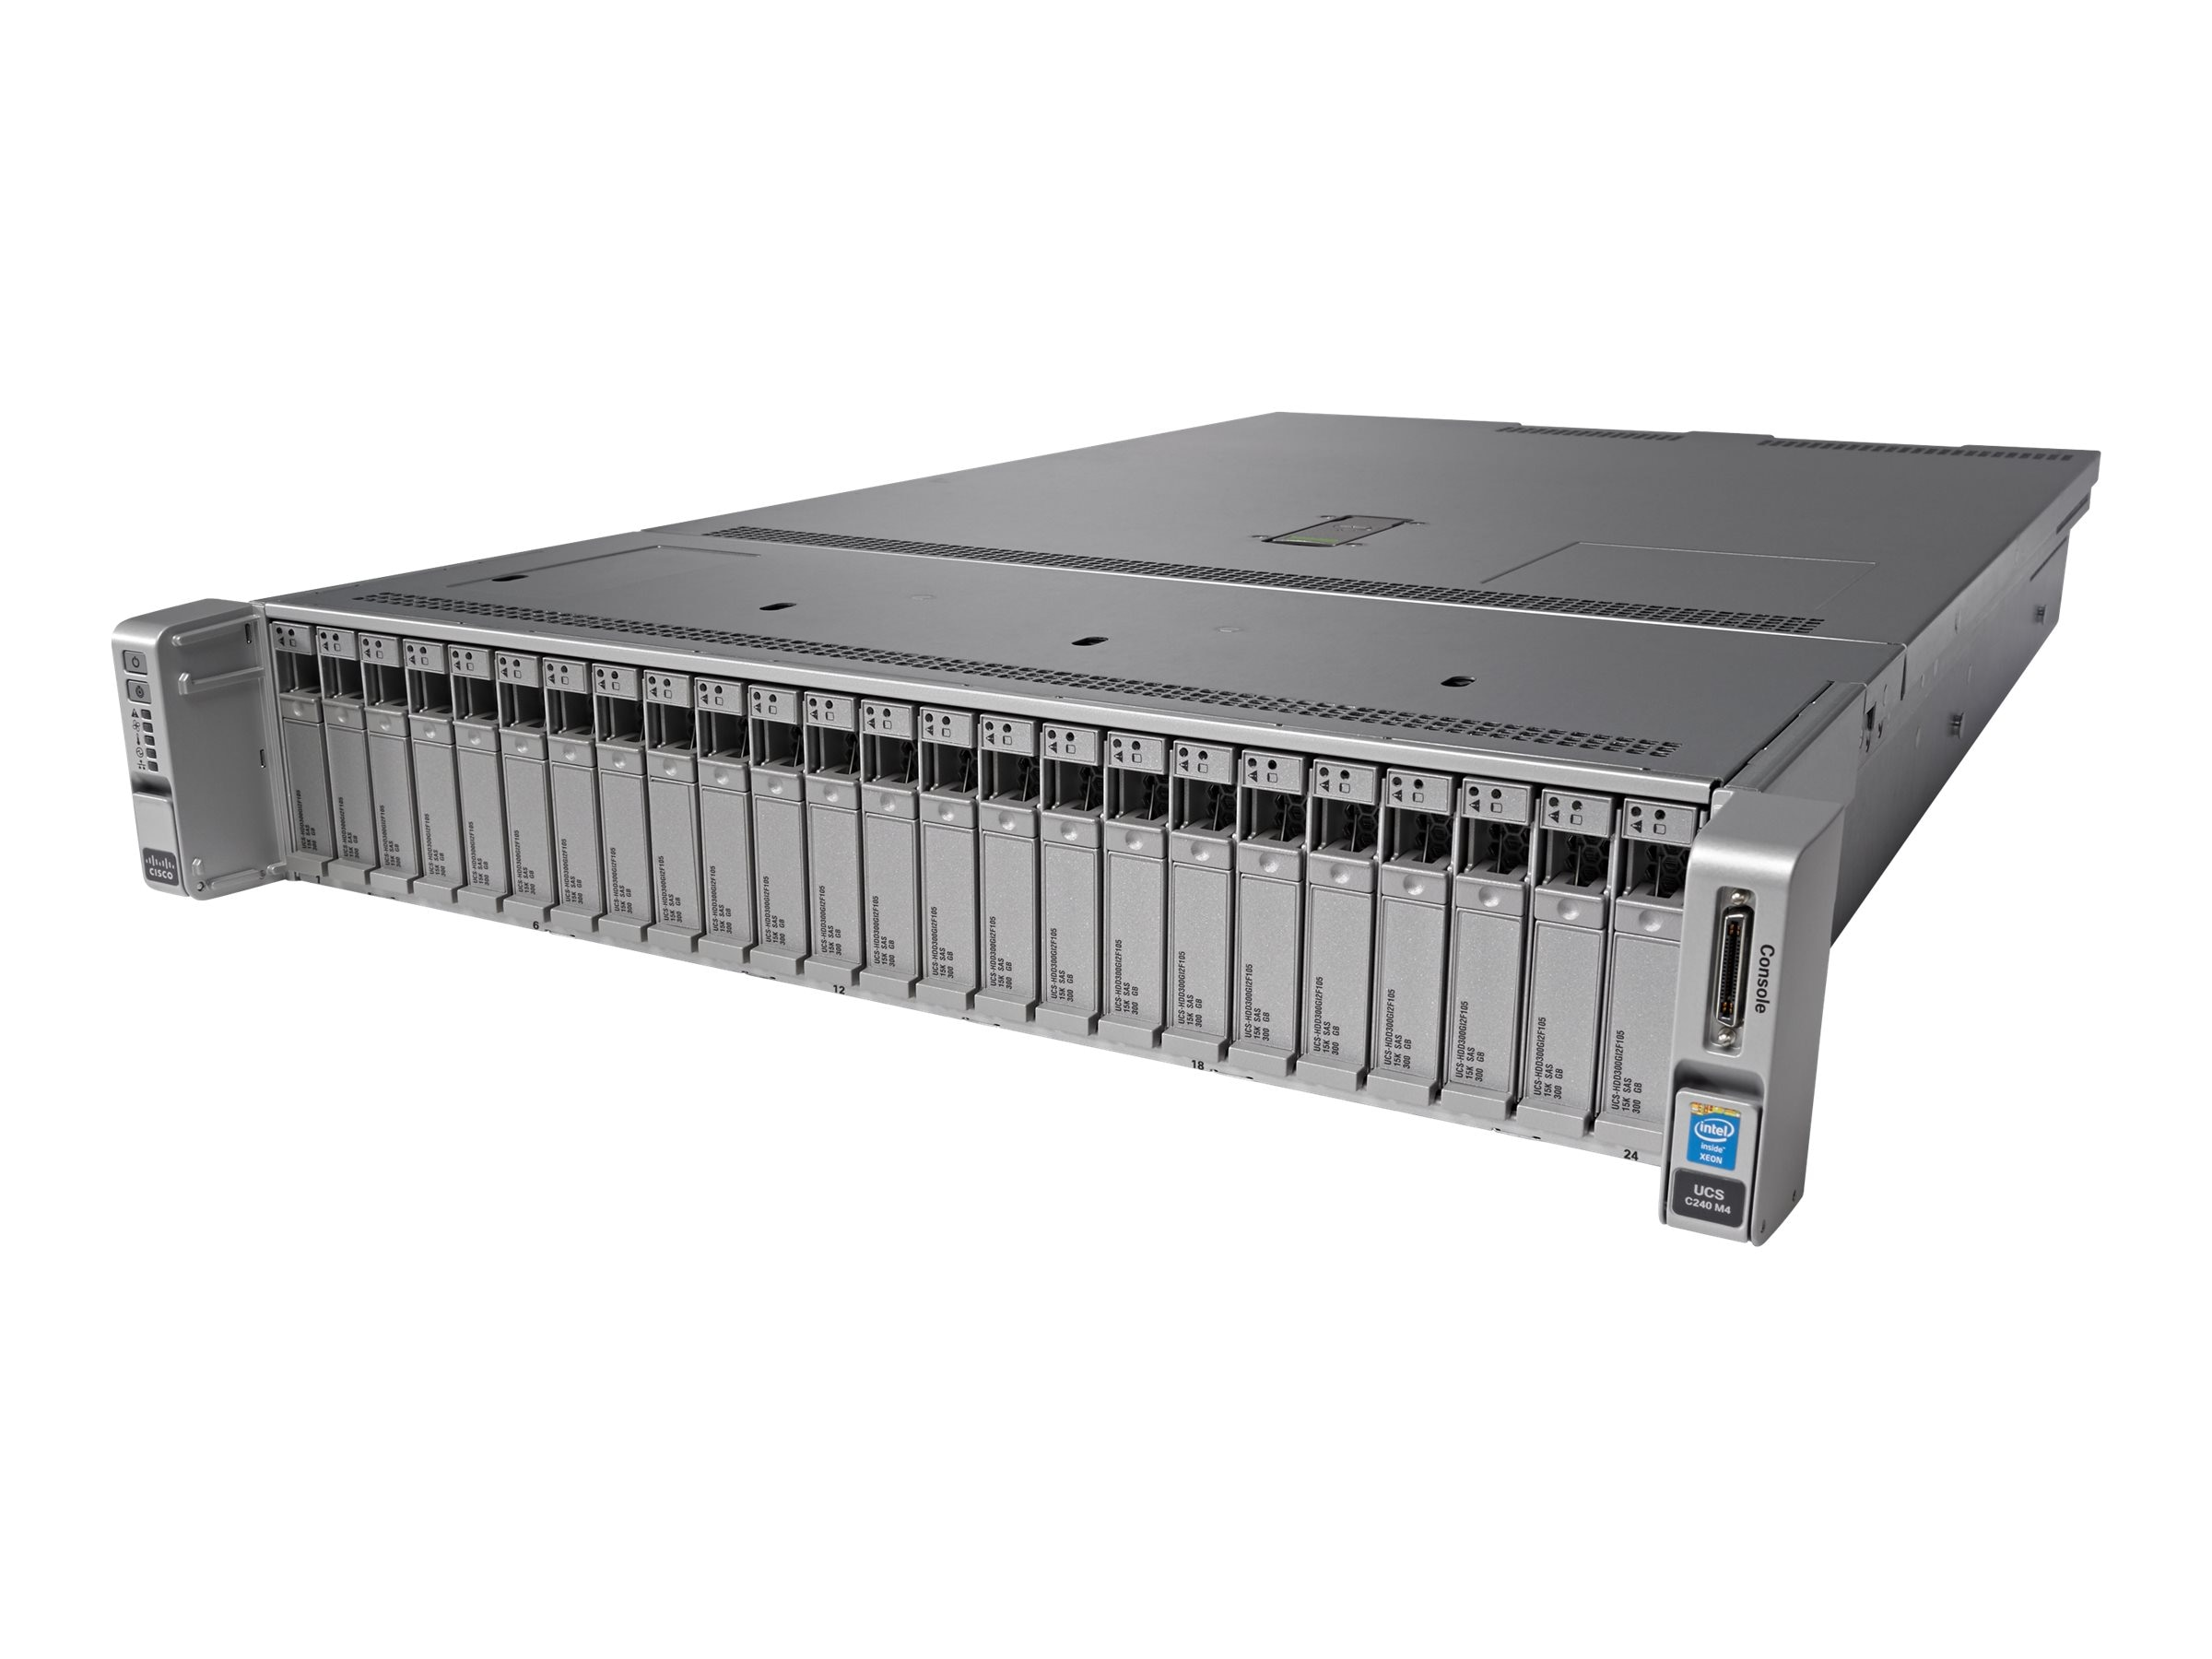 Cisco UCS-SPR-C240M4-BS2 Image 1